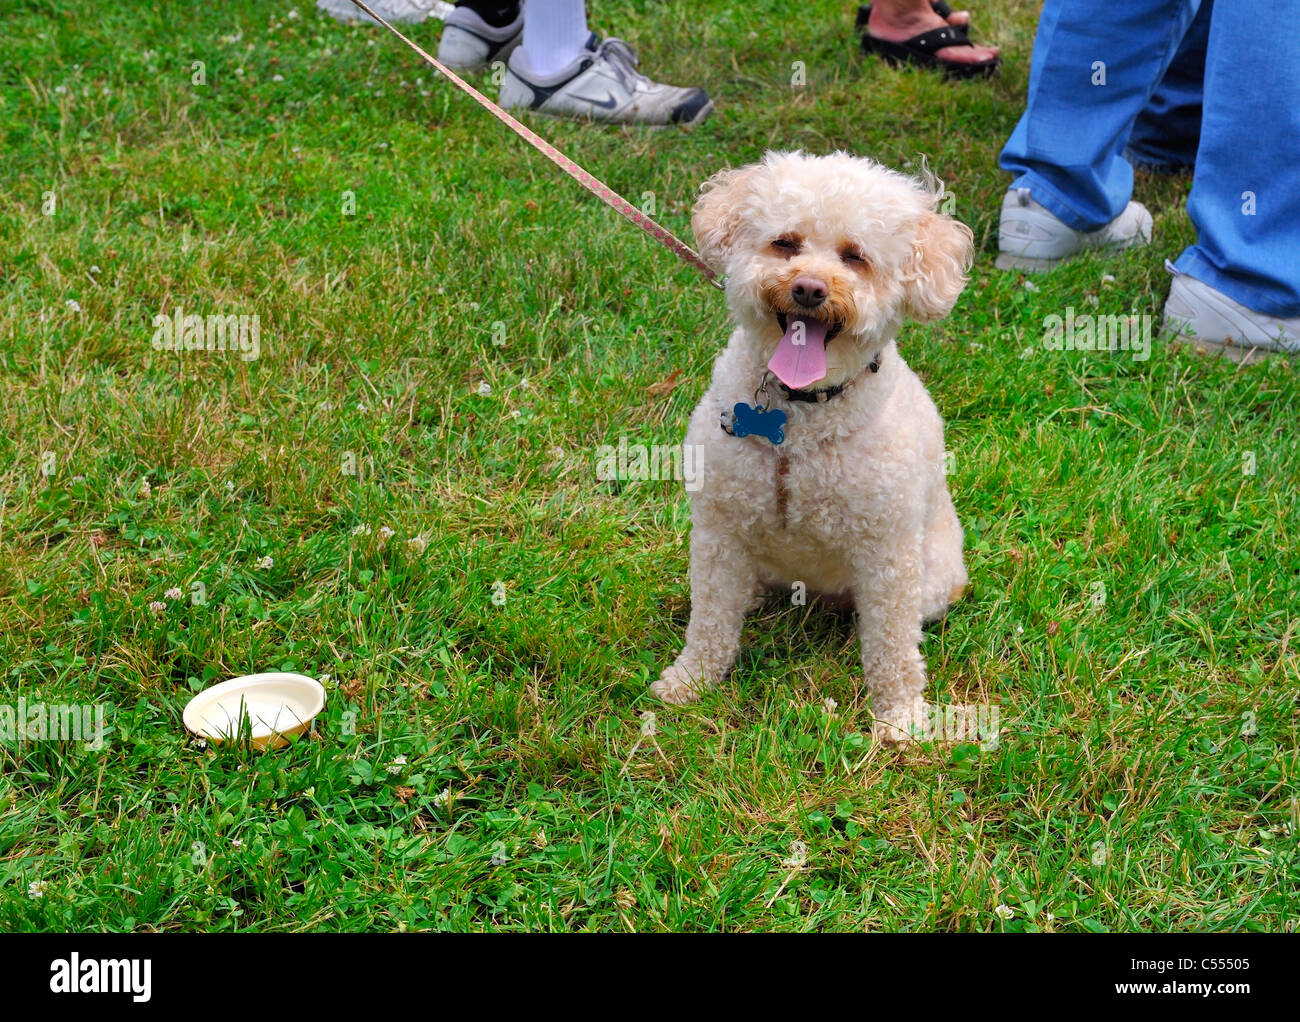 Dog On Leash With Small Water Bowl On Grass So Healthy Happy